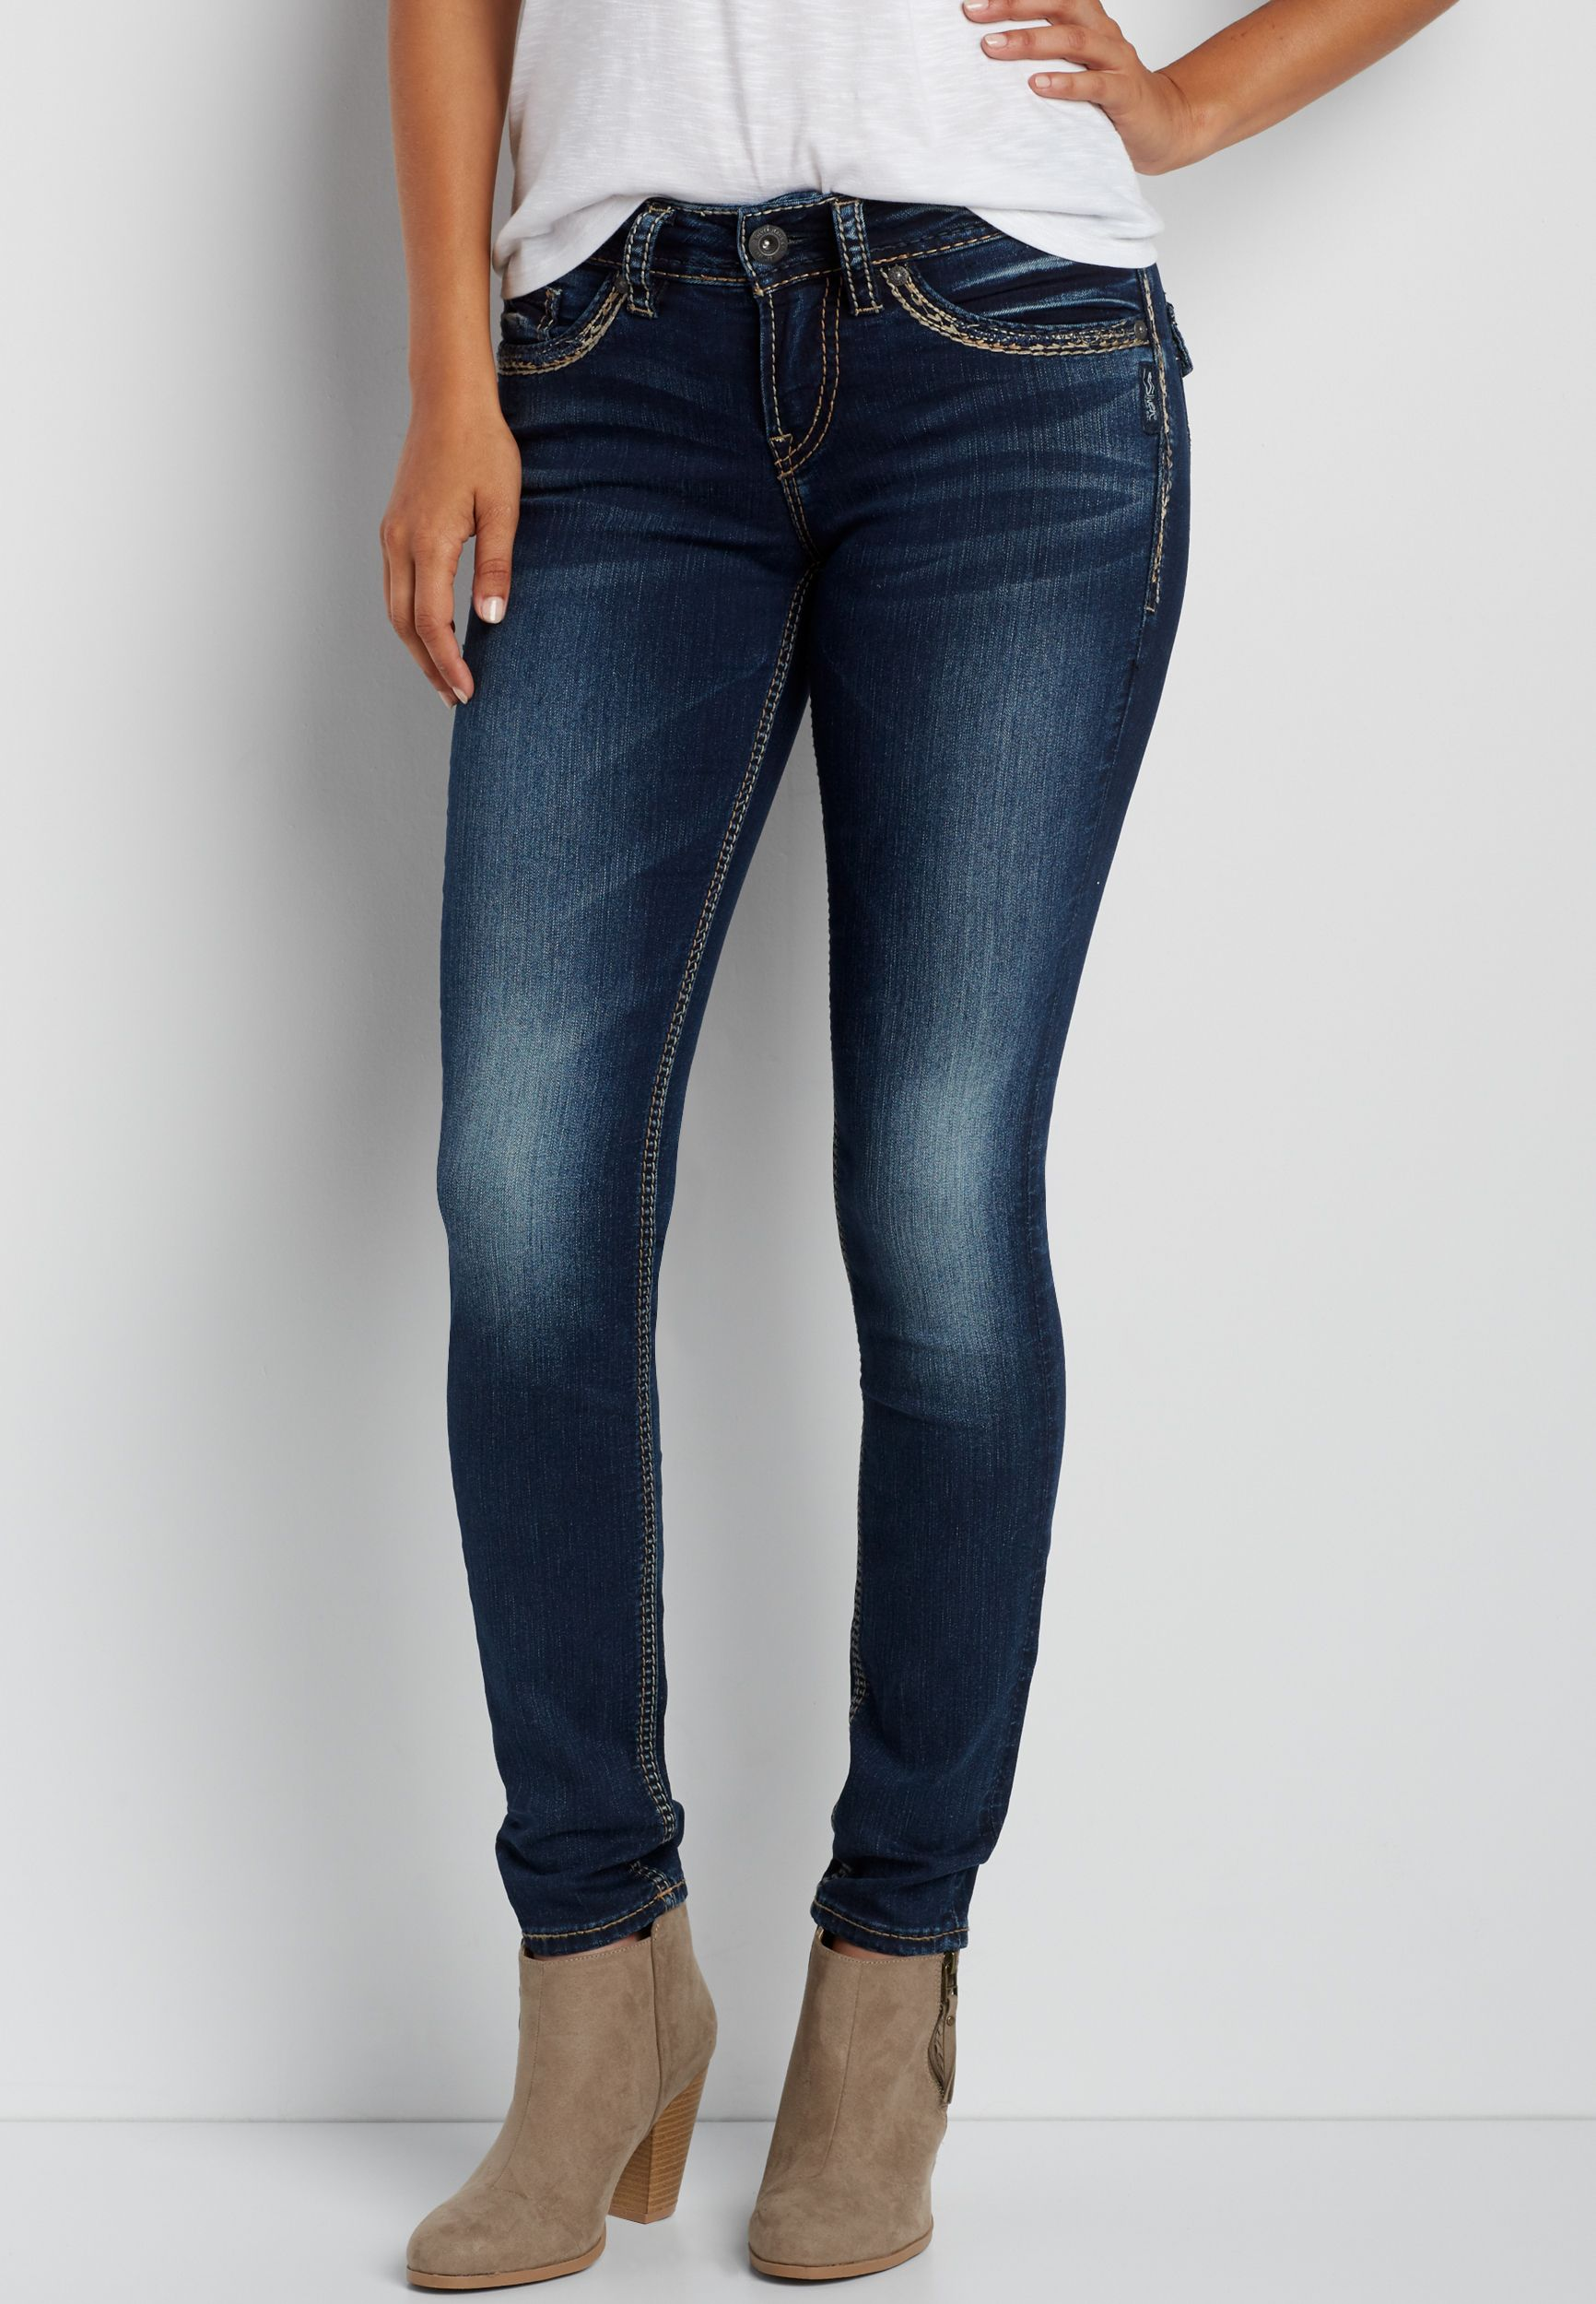 feb2daff Silver Jeans Co.® Suki skinny jeans with back flap pockets ...